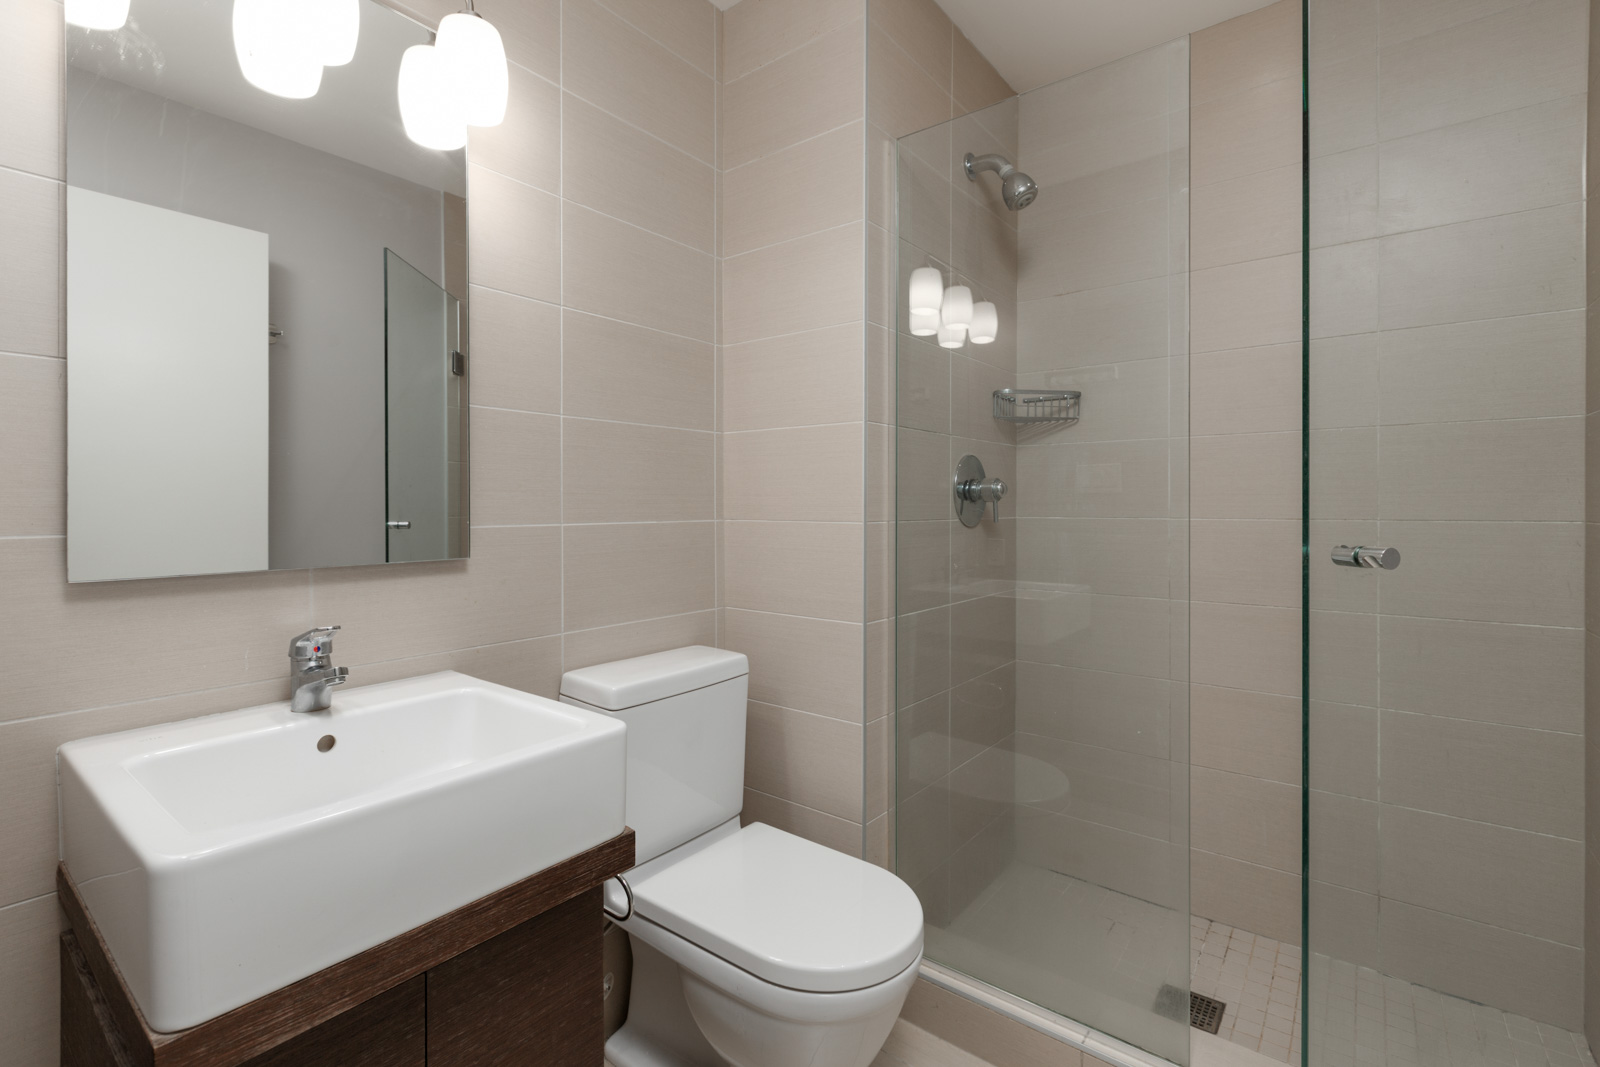 Cozy bathroom with lighting fixtures over mirror and sink in bathroom in a rental condo in Richmond offered by Birds Nest Properties